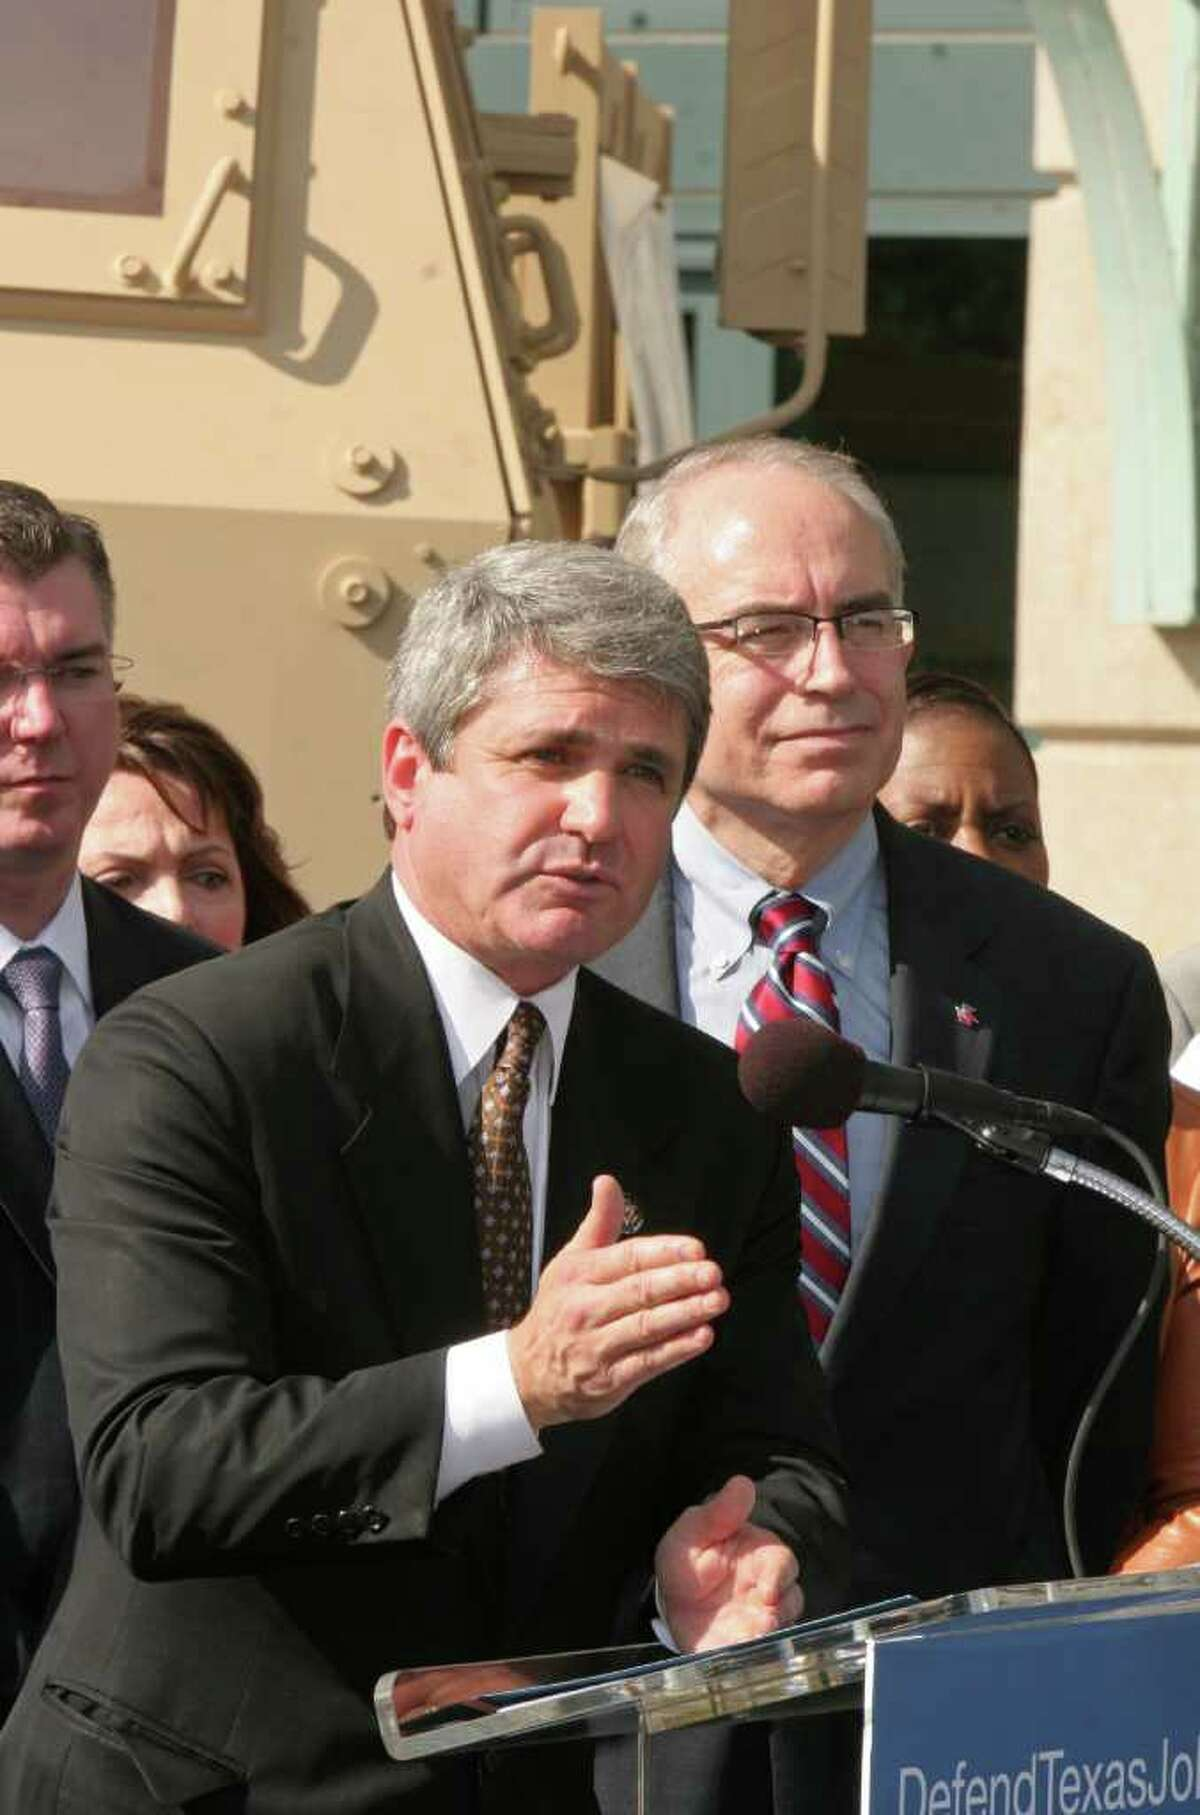 (For the Chronicle/Gary Fountain, November 23, 2009) Congressman Michael McCaul, left, talking about the bidding process that has taken away a contract to build military armored vehicles at a Sealy plant and the cost to the region's economy. At right, is Jeff Moseley, president and CEO of Greater Houston Partnership. In the background are 17 of the Army's Family of Medium Tactical Vehicles (FMTV), representing one for each year they have been building them. The press conference was at Minute Maid Park.